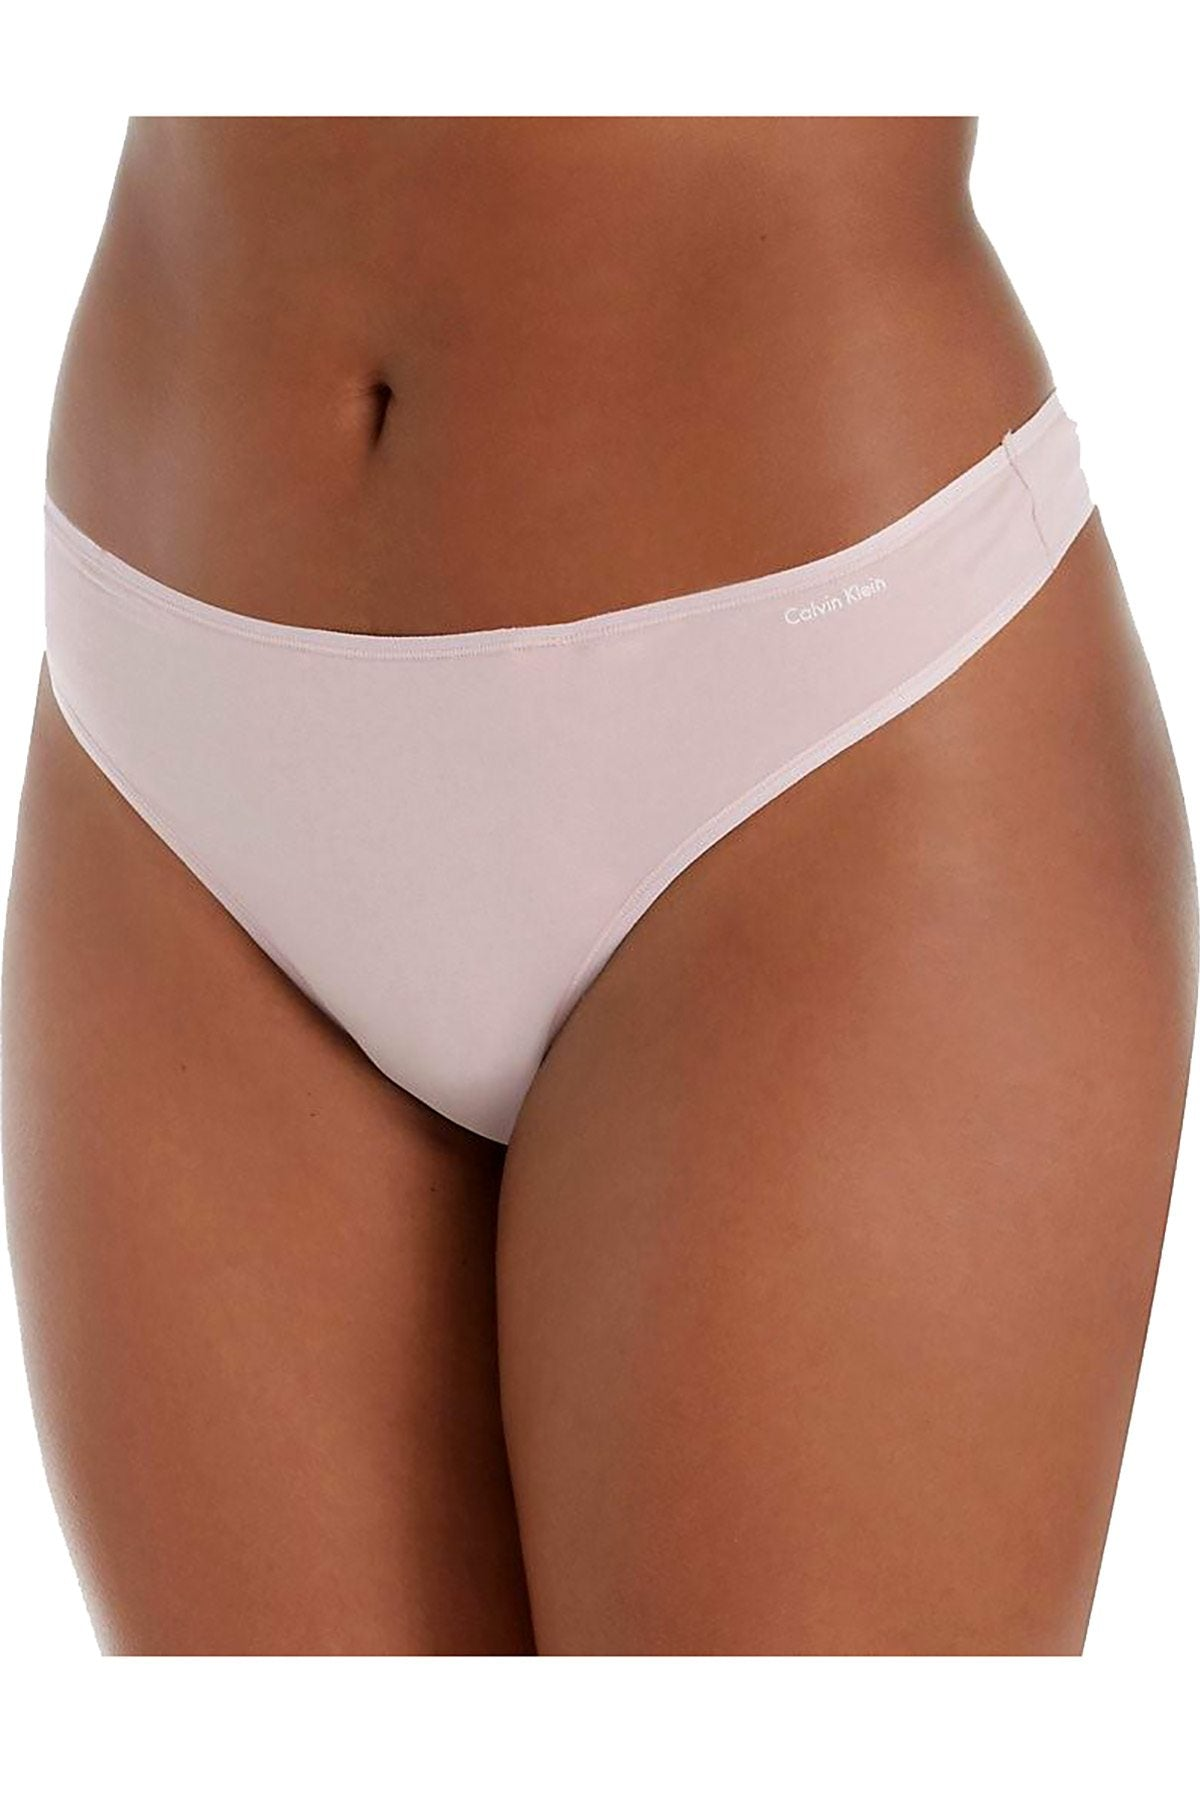 Calvin Klein PLUS Connected-Pink Cotton Form Thong